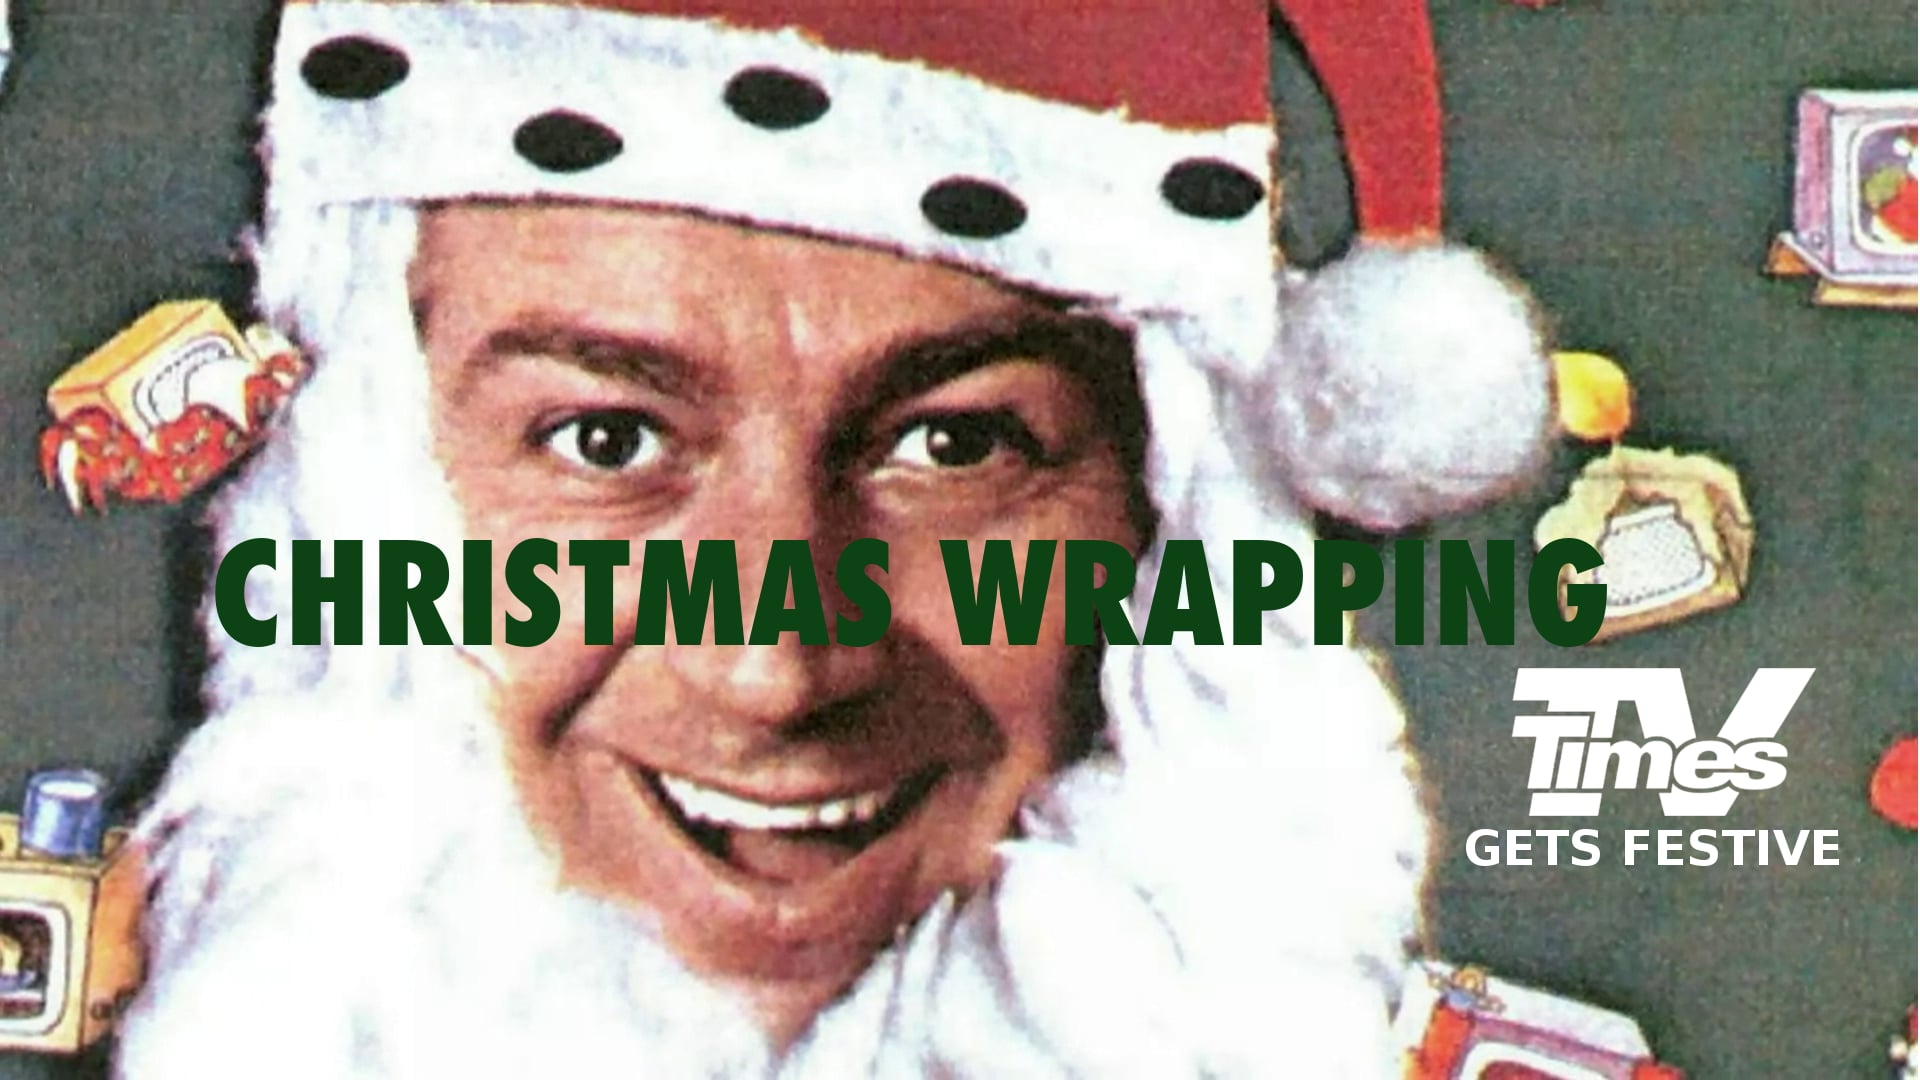 So Much More Christmas Wrapping: TV Times Gets Festive